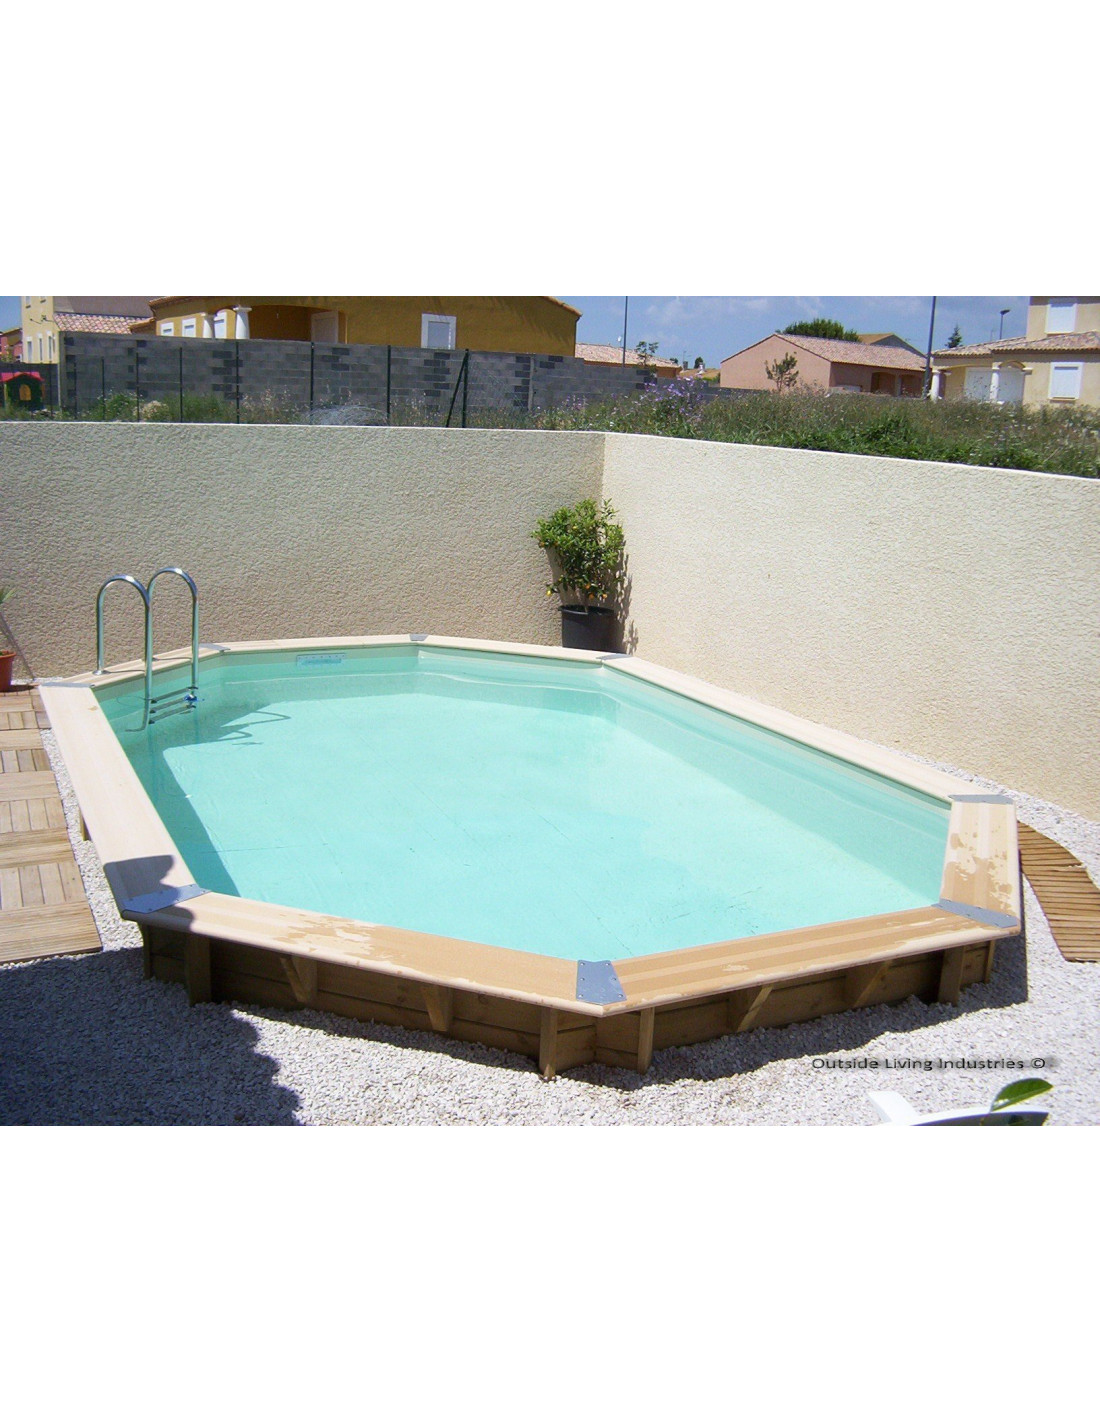 Promo piscine bois octogonale for Promo piscine bois